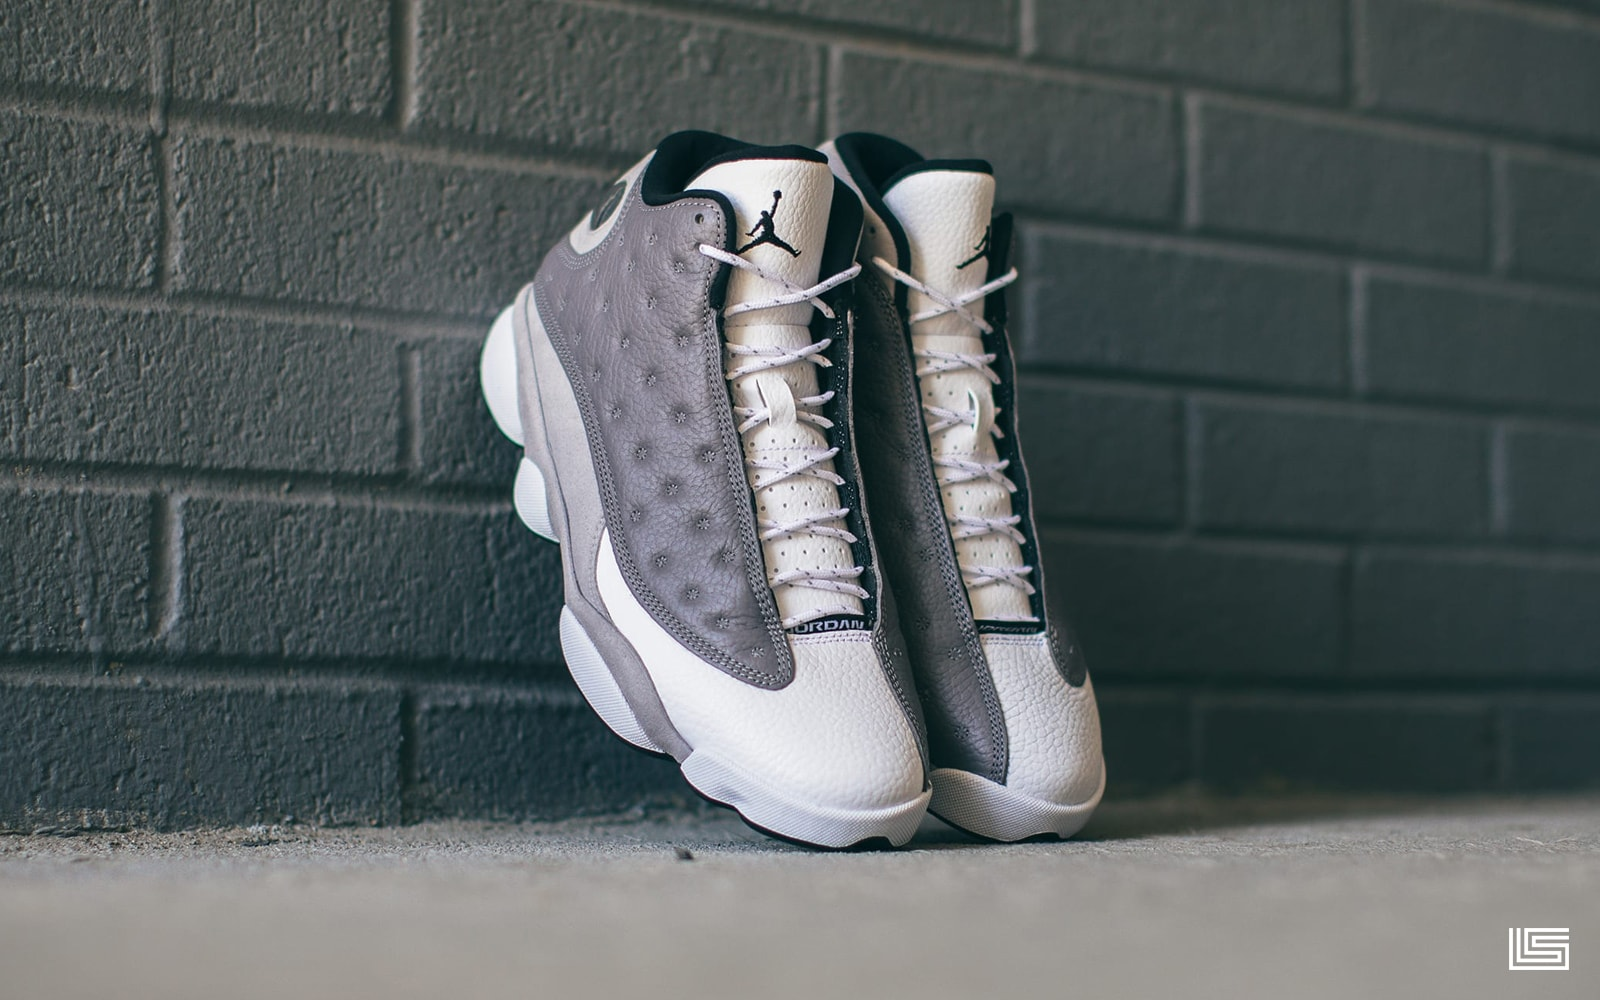 SET TO DROP: AIR JORDAN RETRO 13 'ATMOSPHERE GREY'